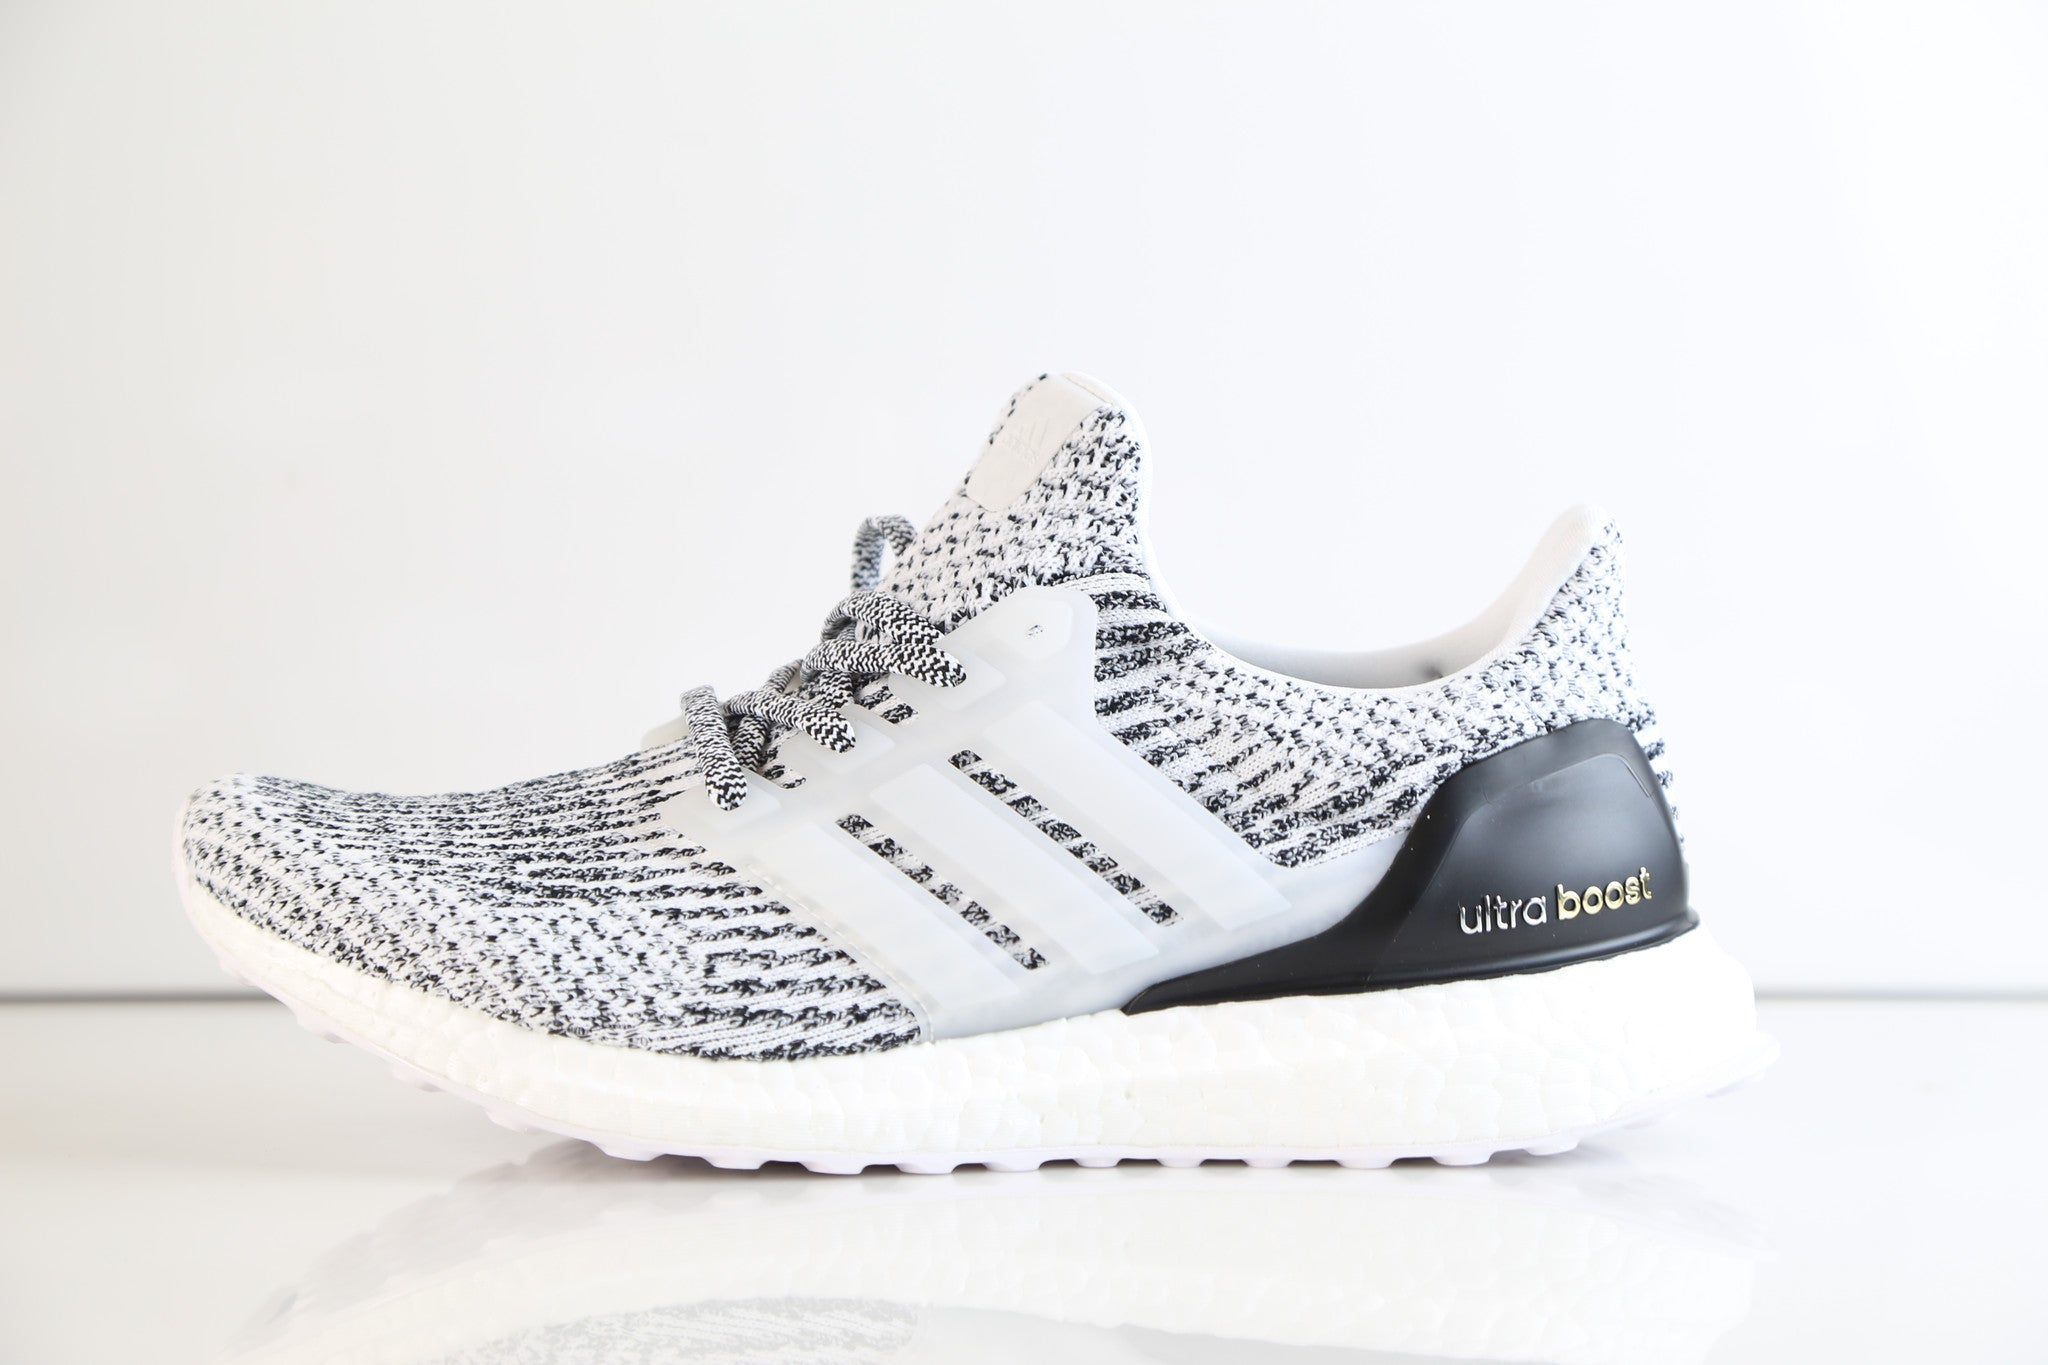 adidas ultra boost 3 0 oreo white black s80636 zadehkicks. Black Bedroom Furniture Sets. Home Design Ideas